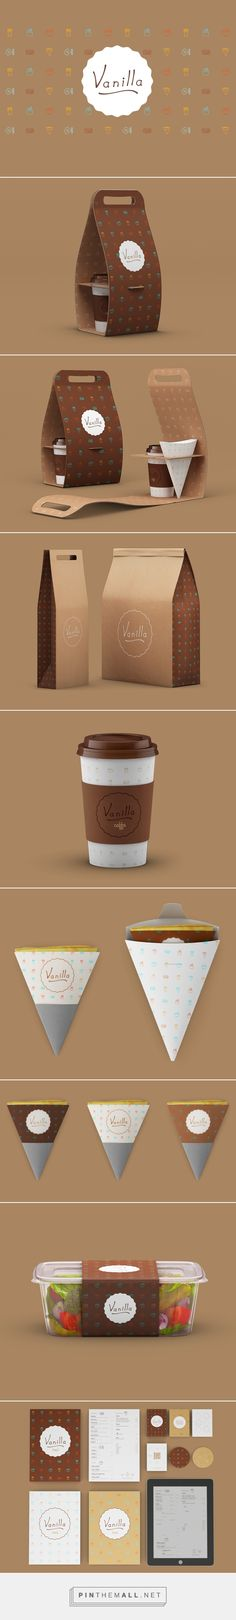 Vanilla identity packaging branding on Behance by Mario Dragic curated by Packaging Diva PD. A small food takeaway cafe where you can get great pancakes, sandwiches and salads.                                                                                                                                                                                 More